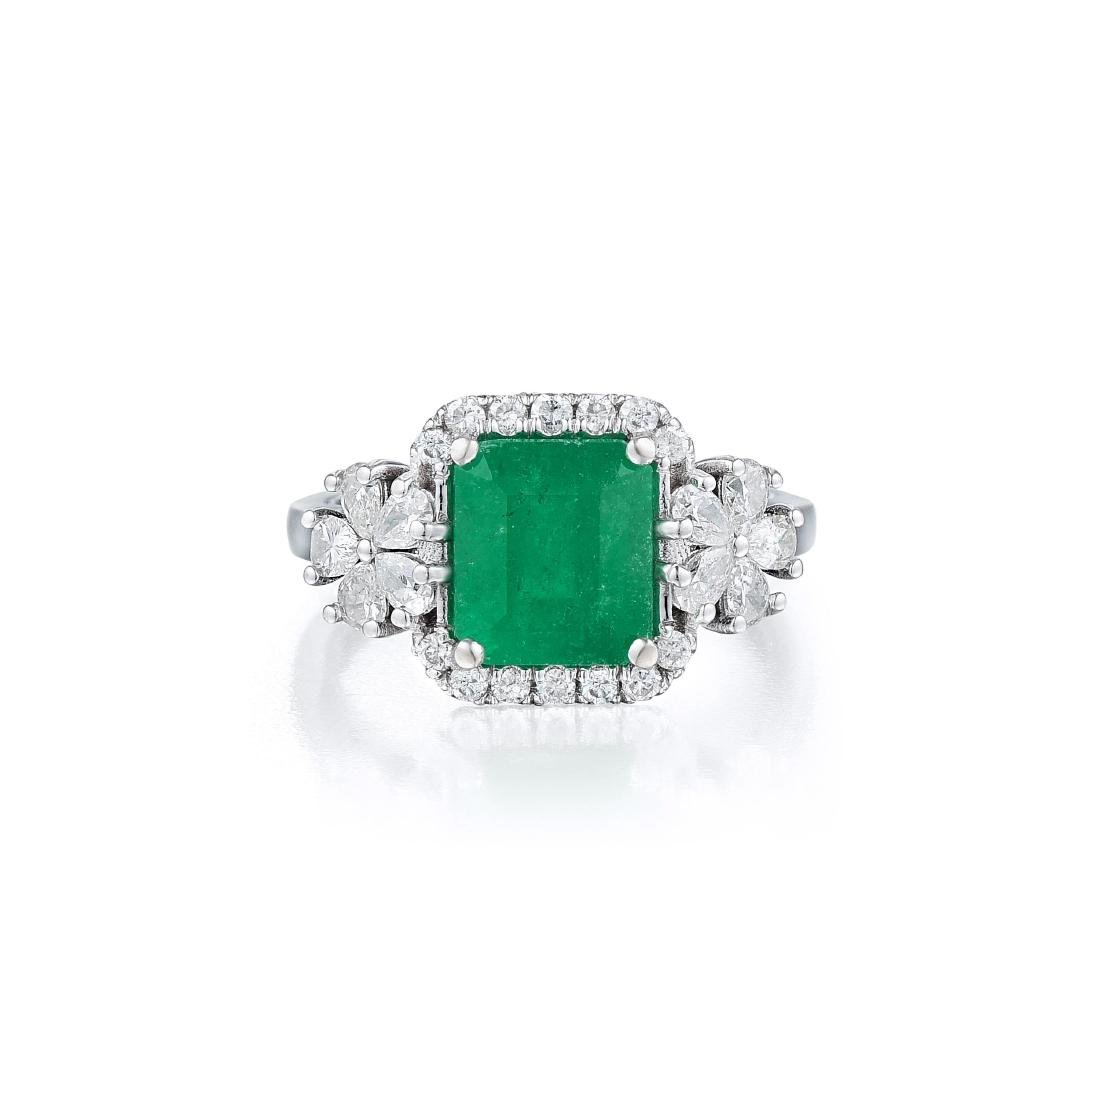 An 18K White Gold Emerald and Diamond Ring